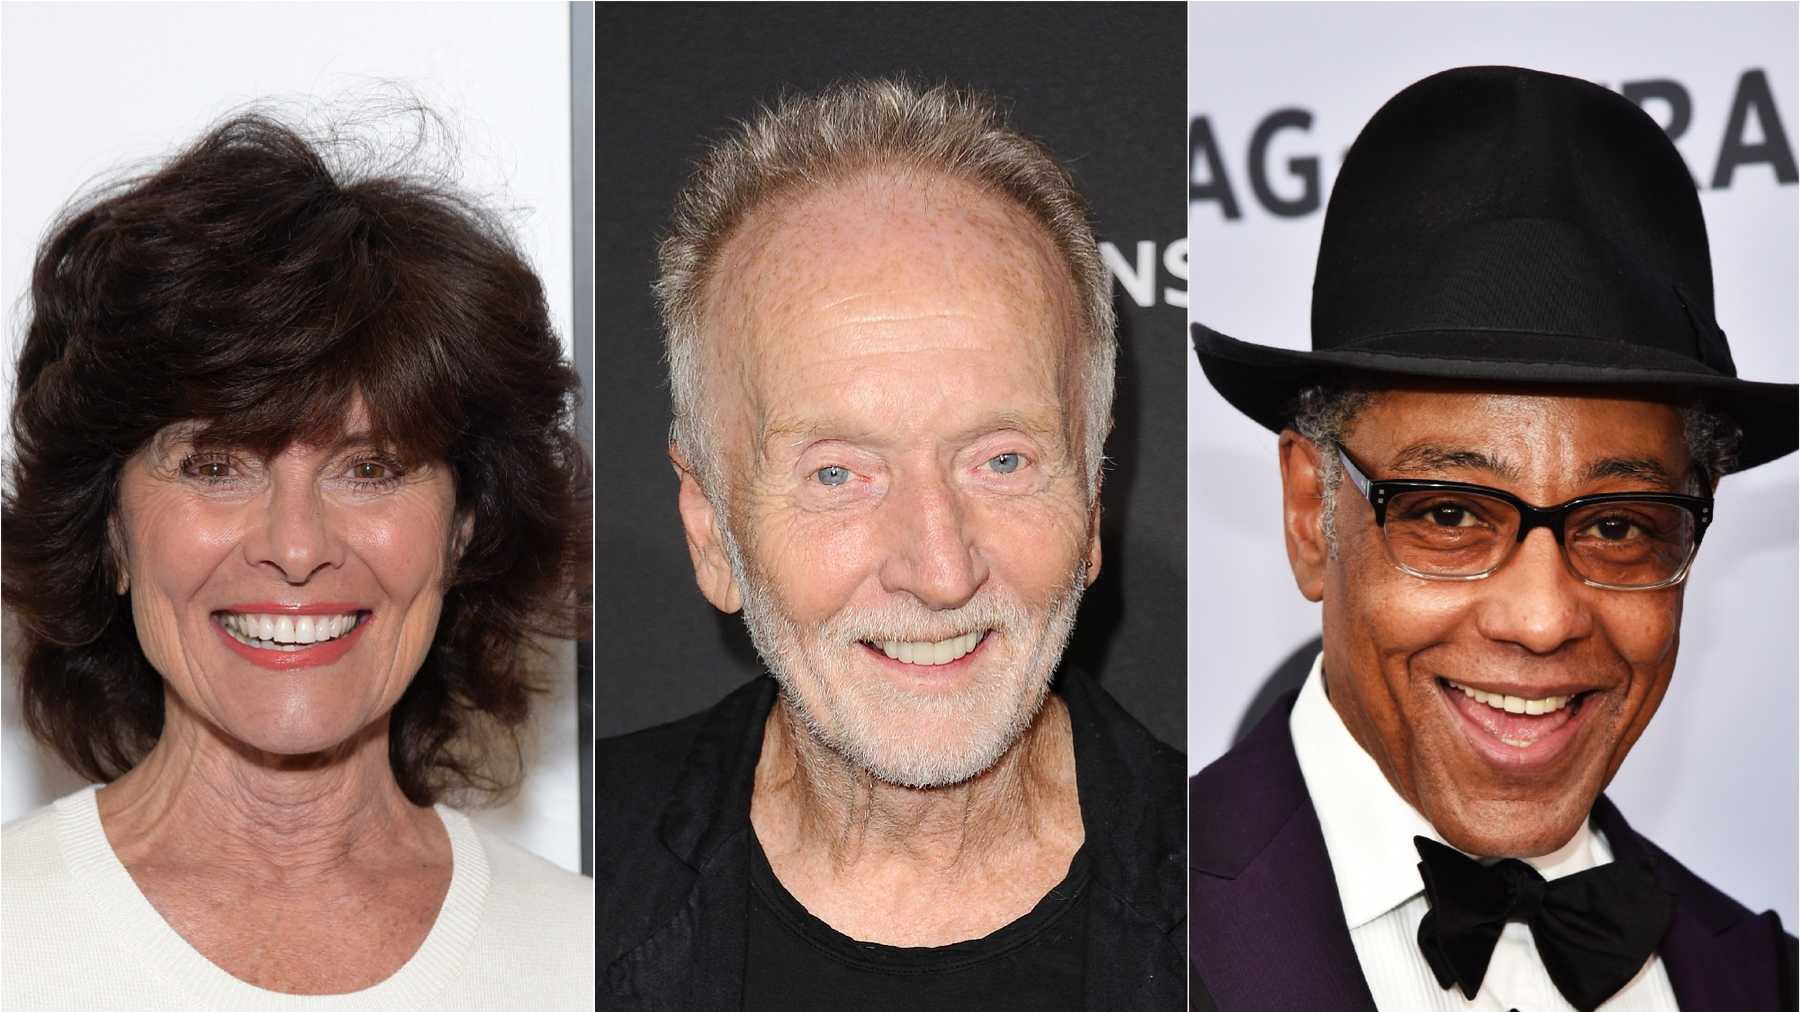 Adrienne Barbeau, Tobin Bell And Giancarlo Esposito Join